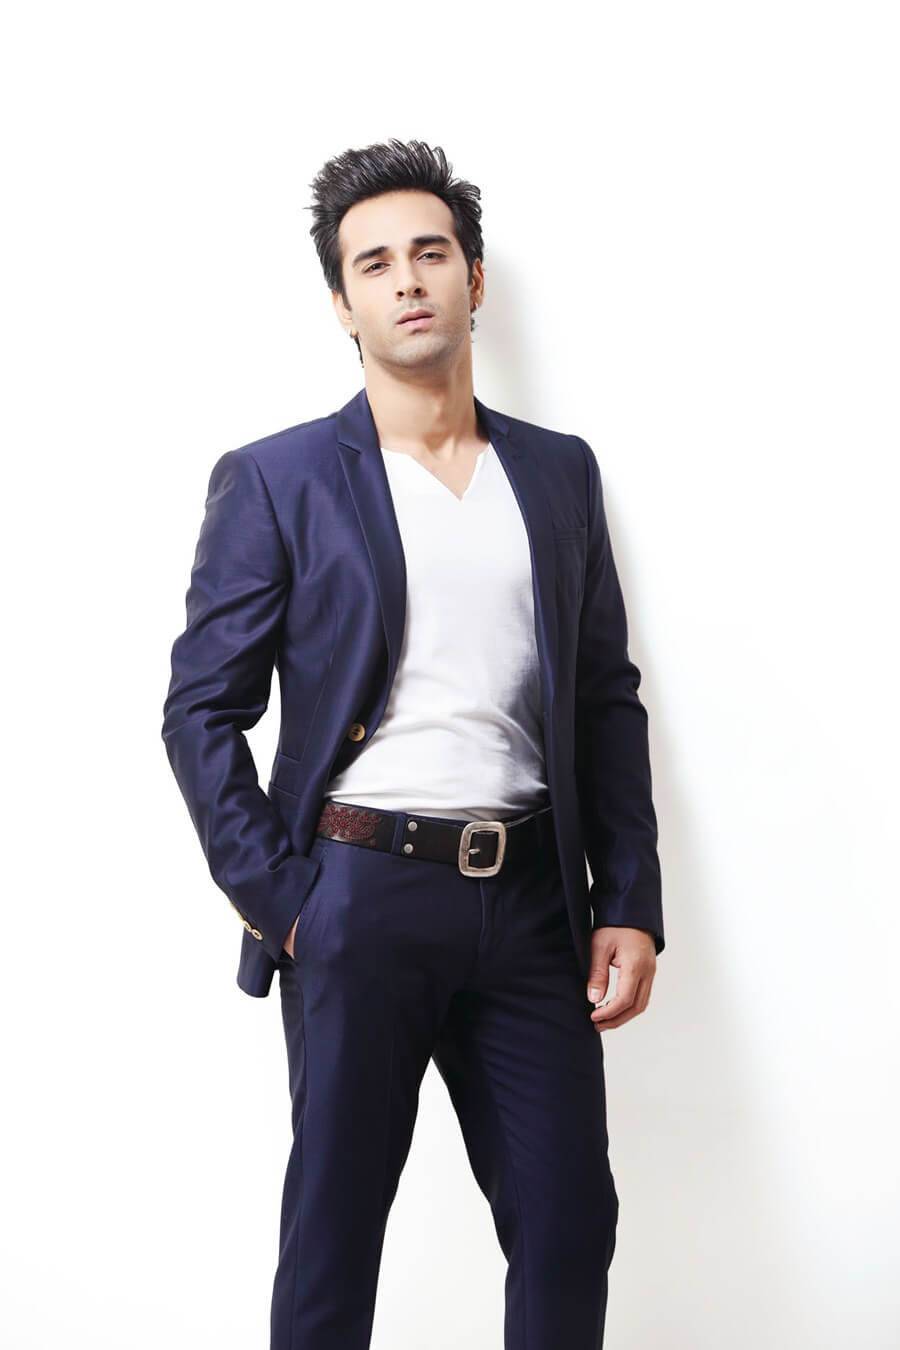 Pulkit Samrat Wife, Movies, Age, Height, Images(photo), Biography, Hairstyle, Girlfriend, Family, Married, Net Worth, Education, Wiki, Twitter, Instagram, Facebook, Imdb (12)